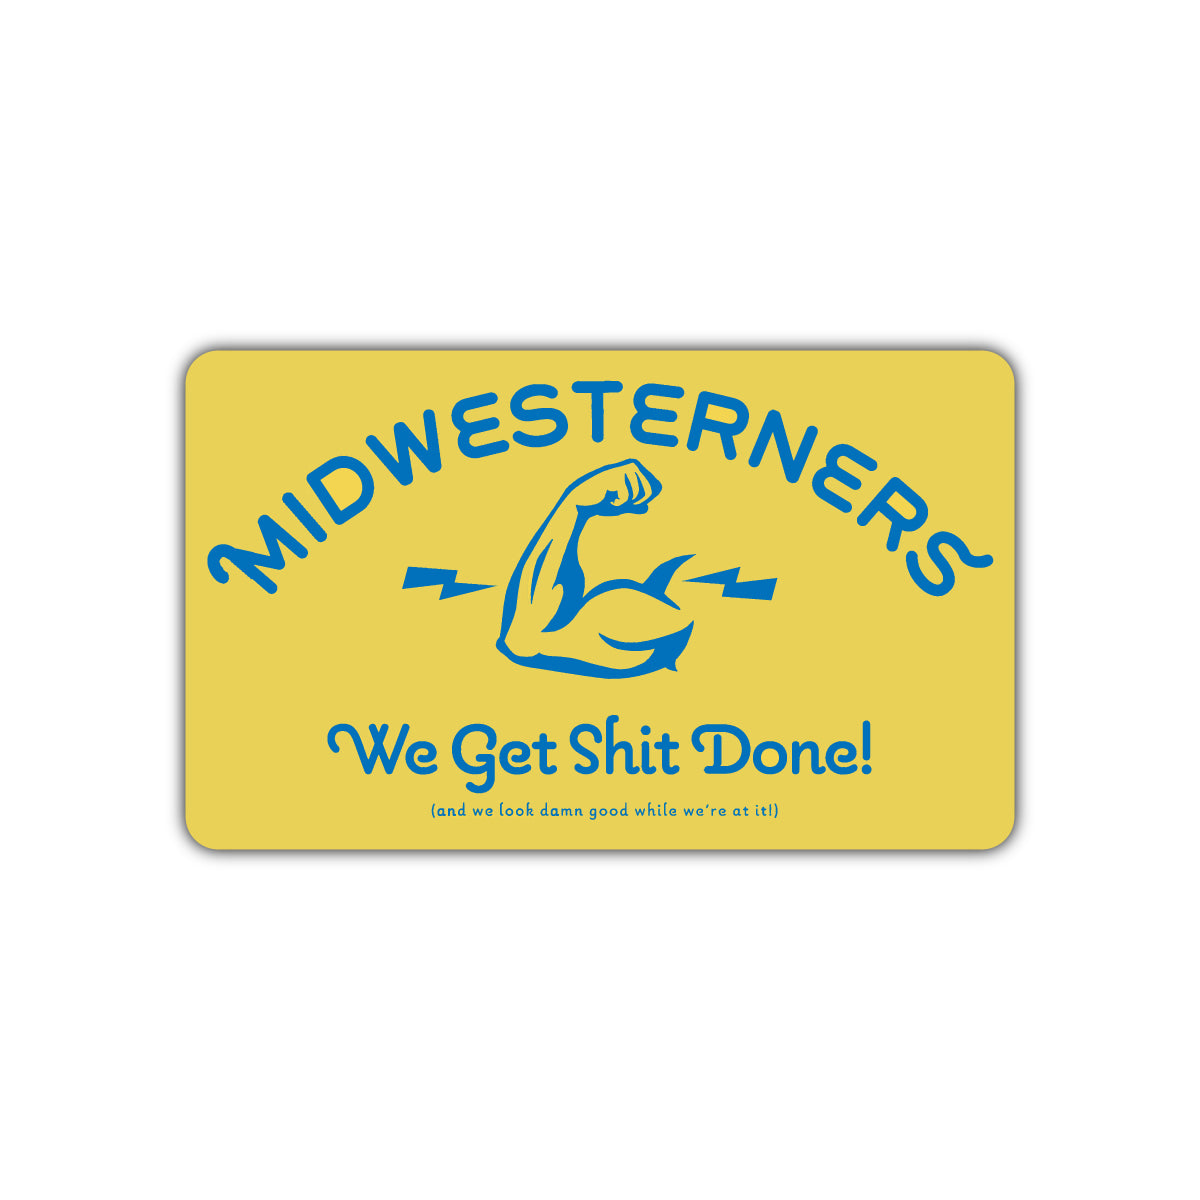 Midwesterners